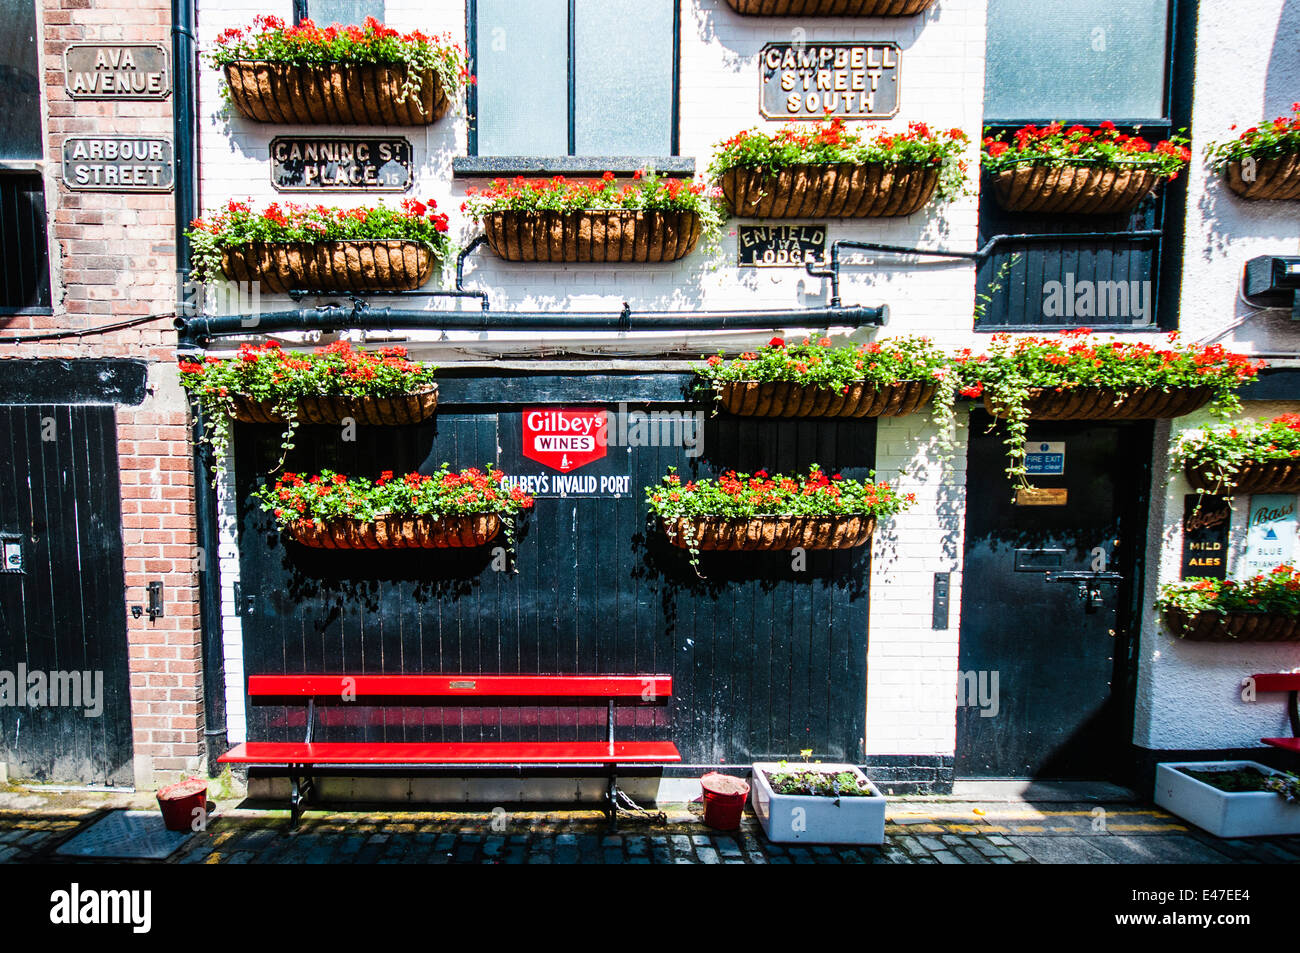 Hanging baskets and red benches outside the Duke of York pub, Belfast - Stock Image